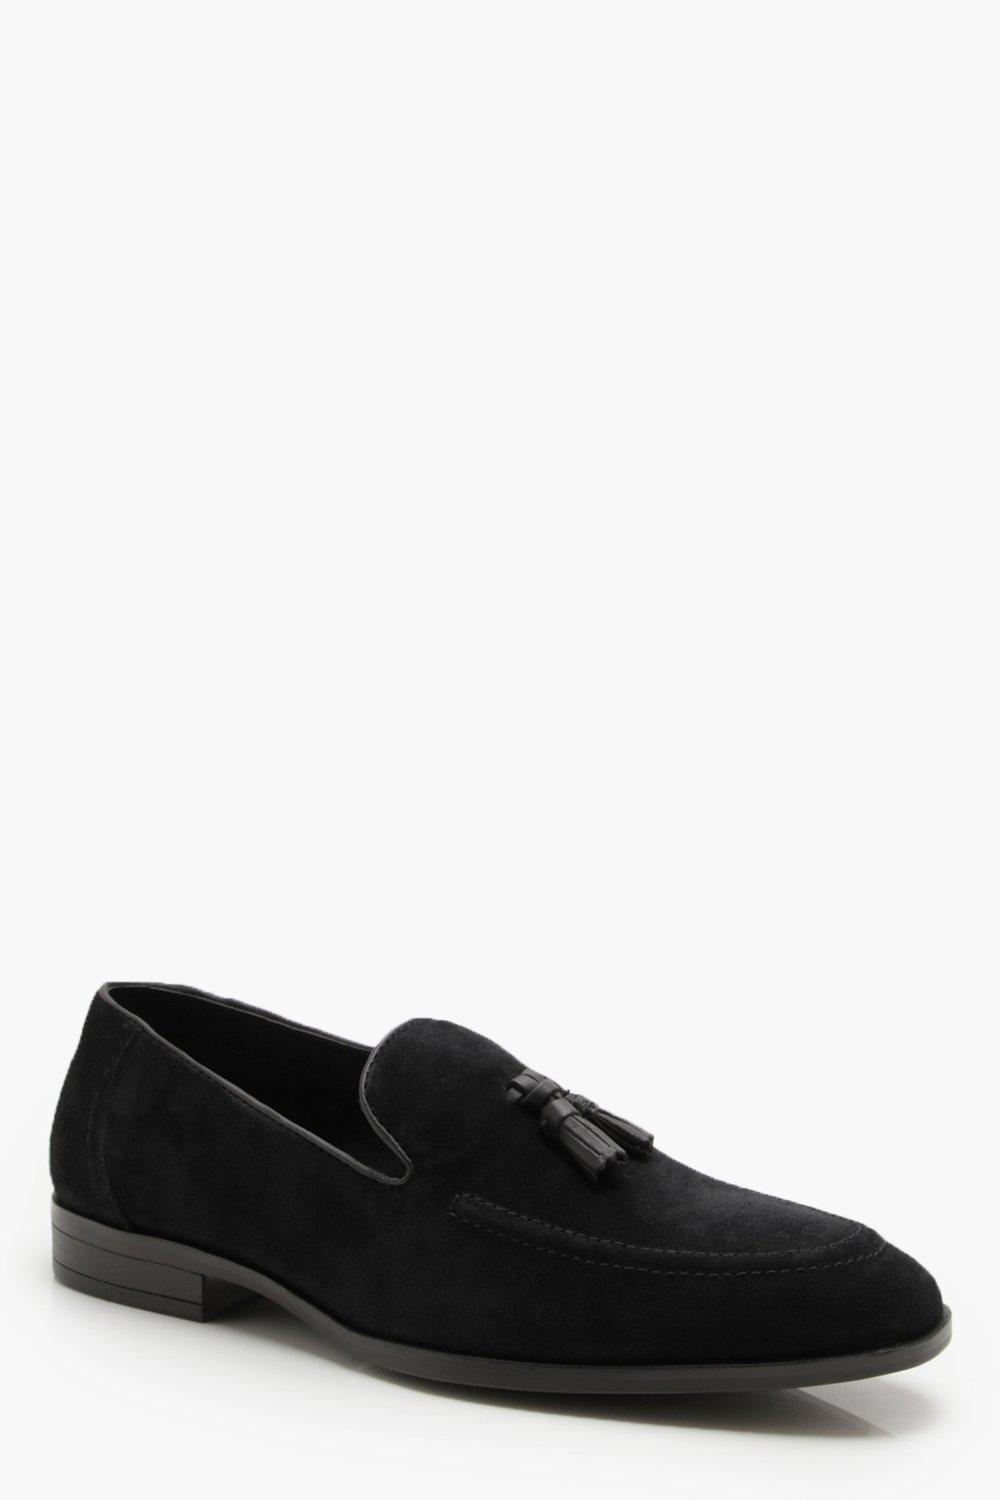 boohooMAN black Real Suede Tassel Loafer